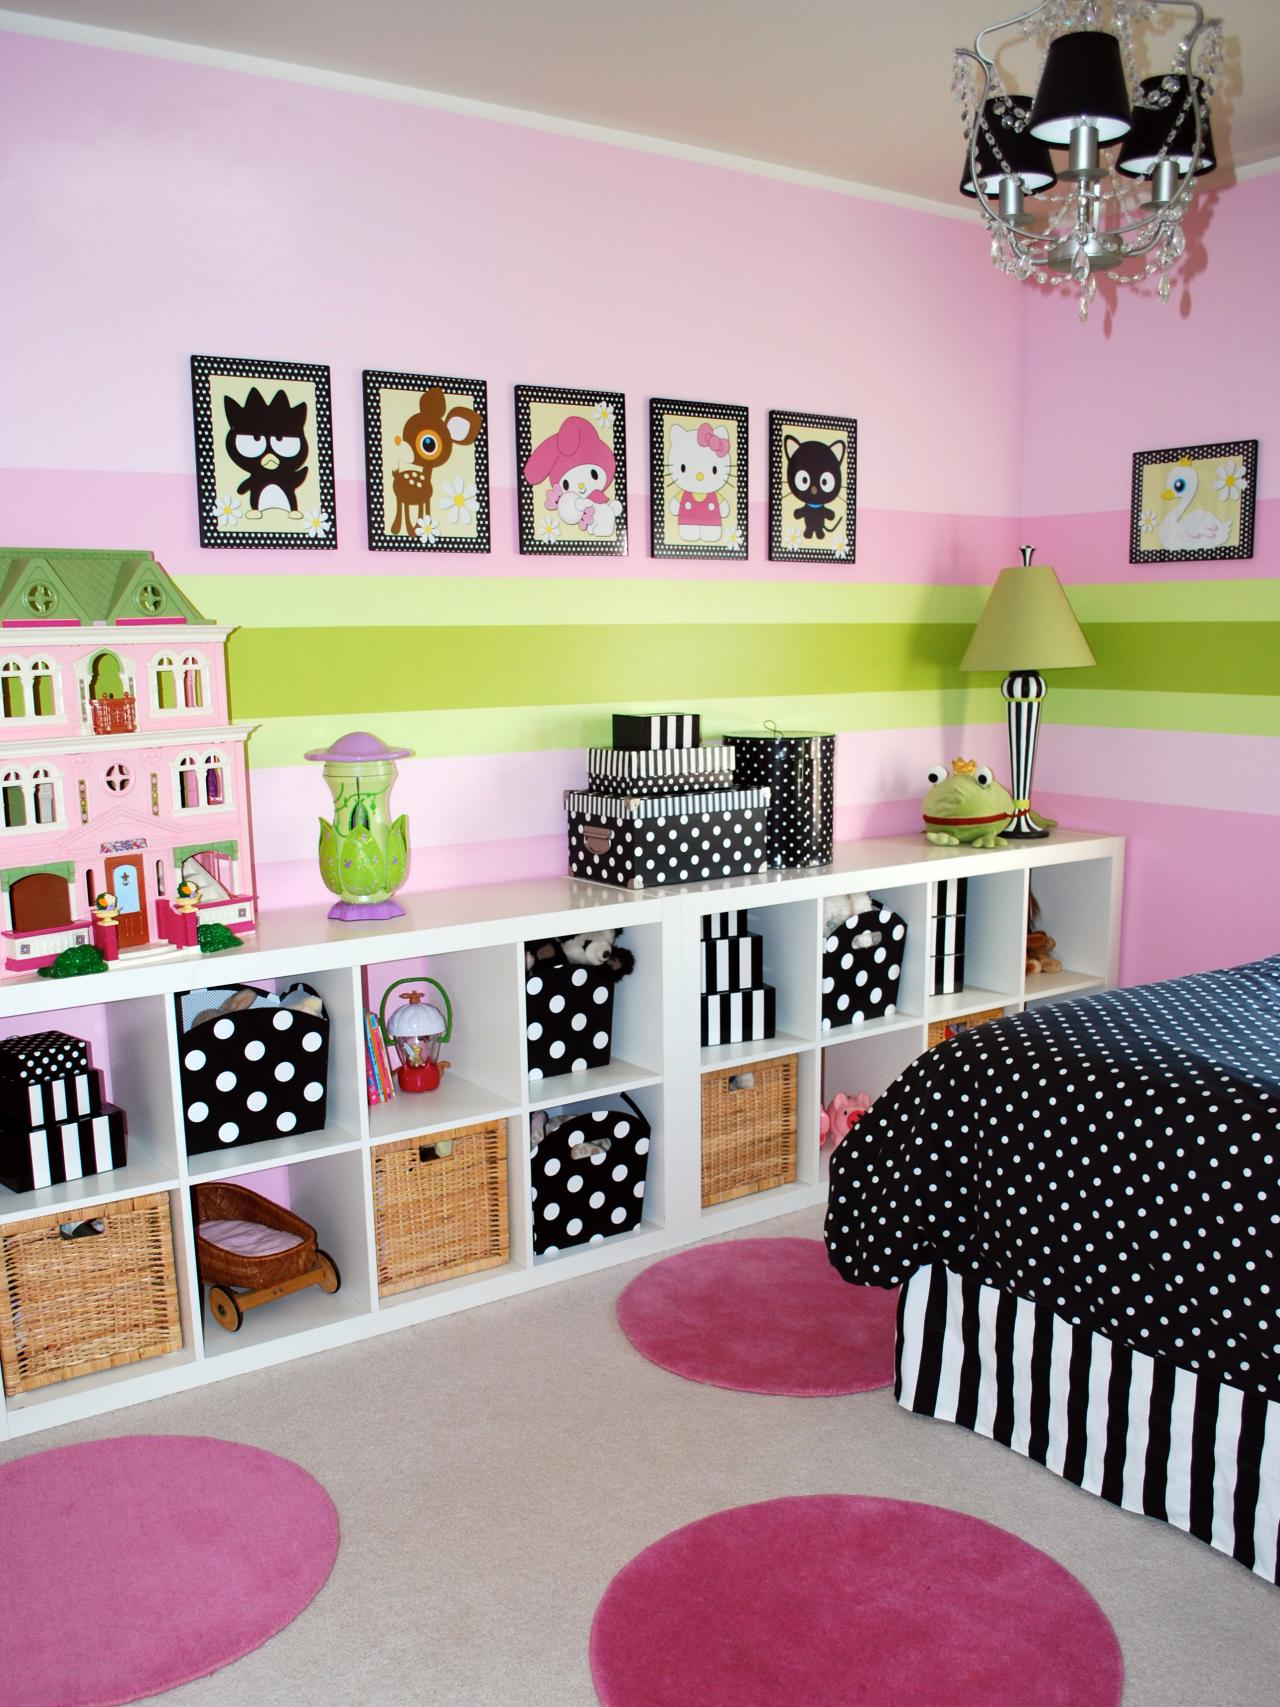 Kids Room Decor Ideas 10 Decorating Ideas For Kids' Rooms  Hgtv